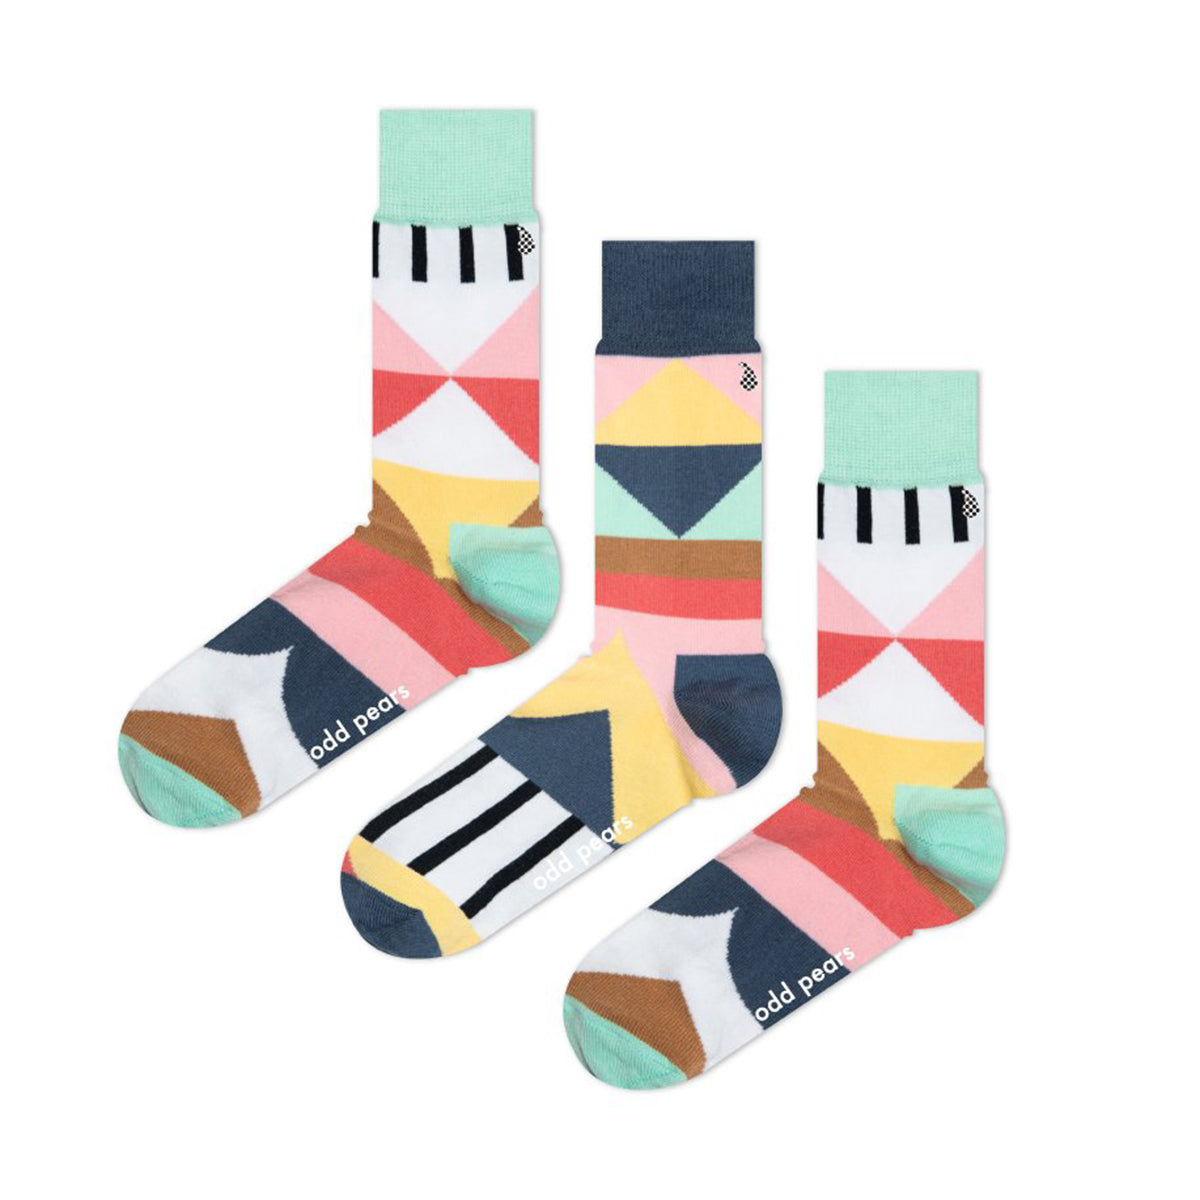 Geo Socks by Odd Pear